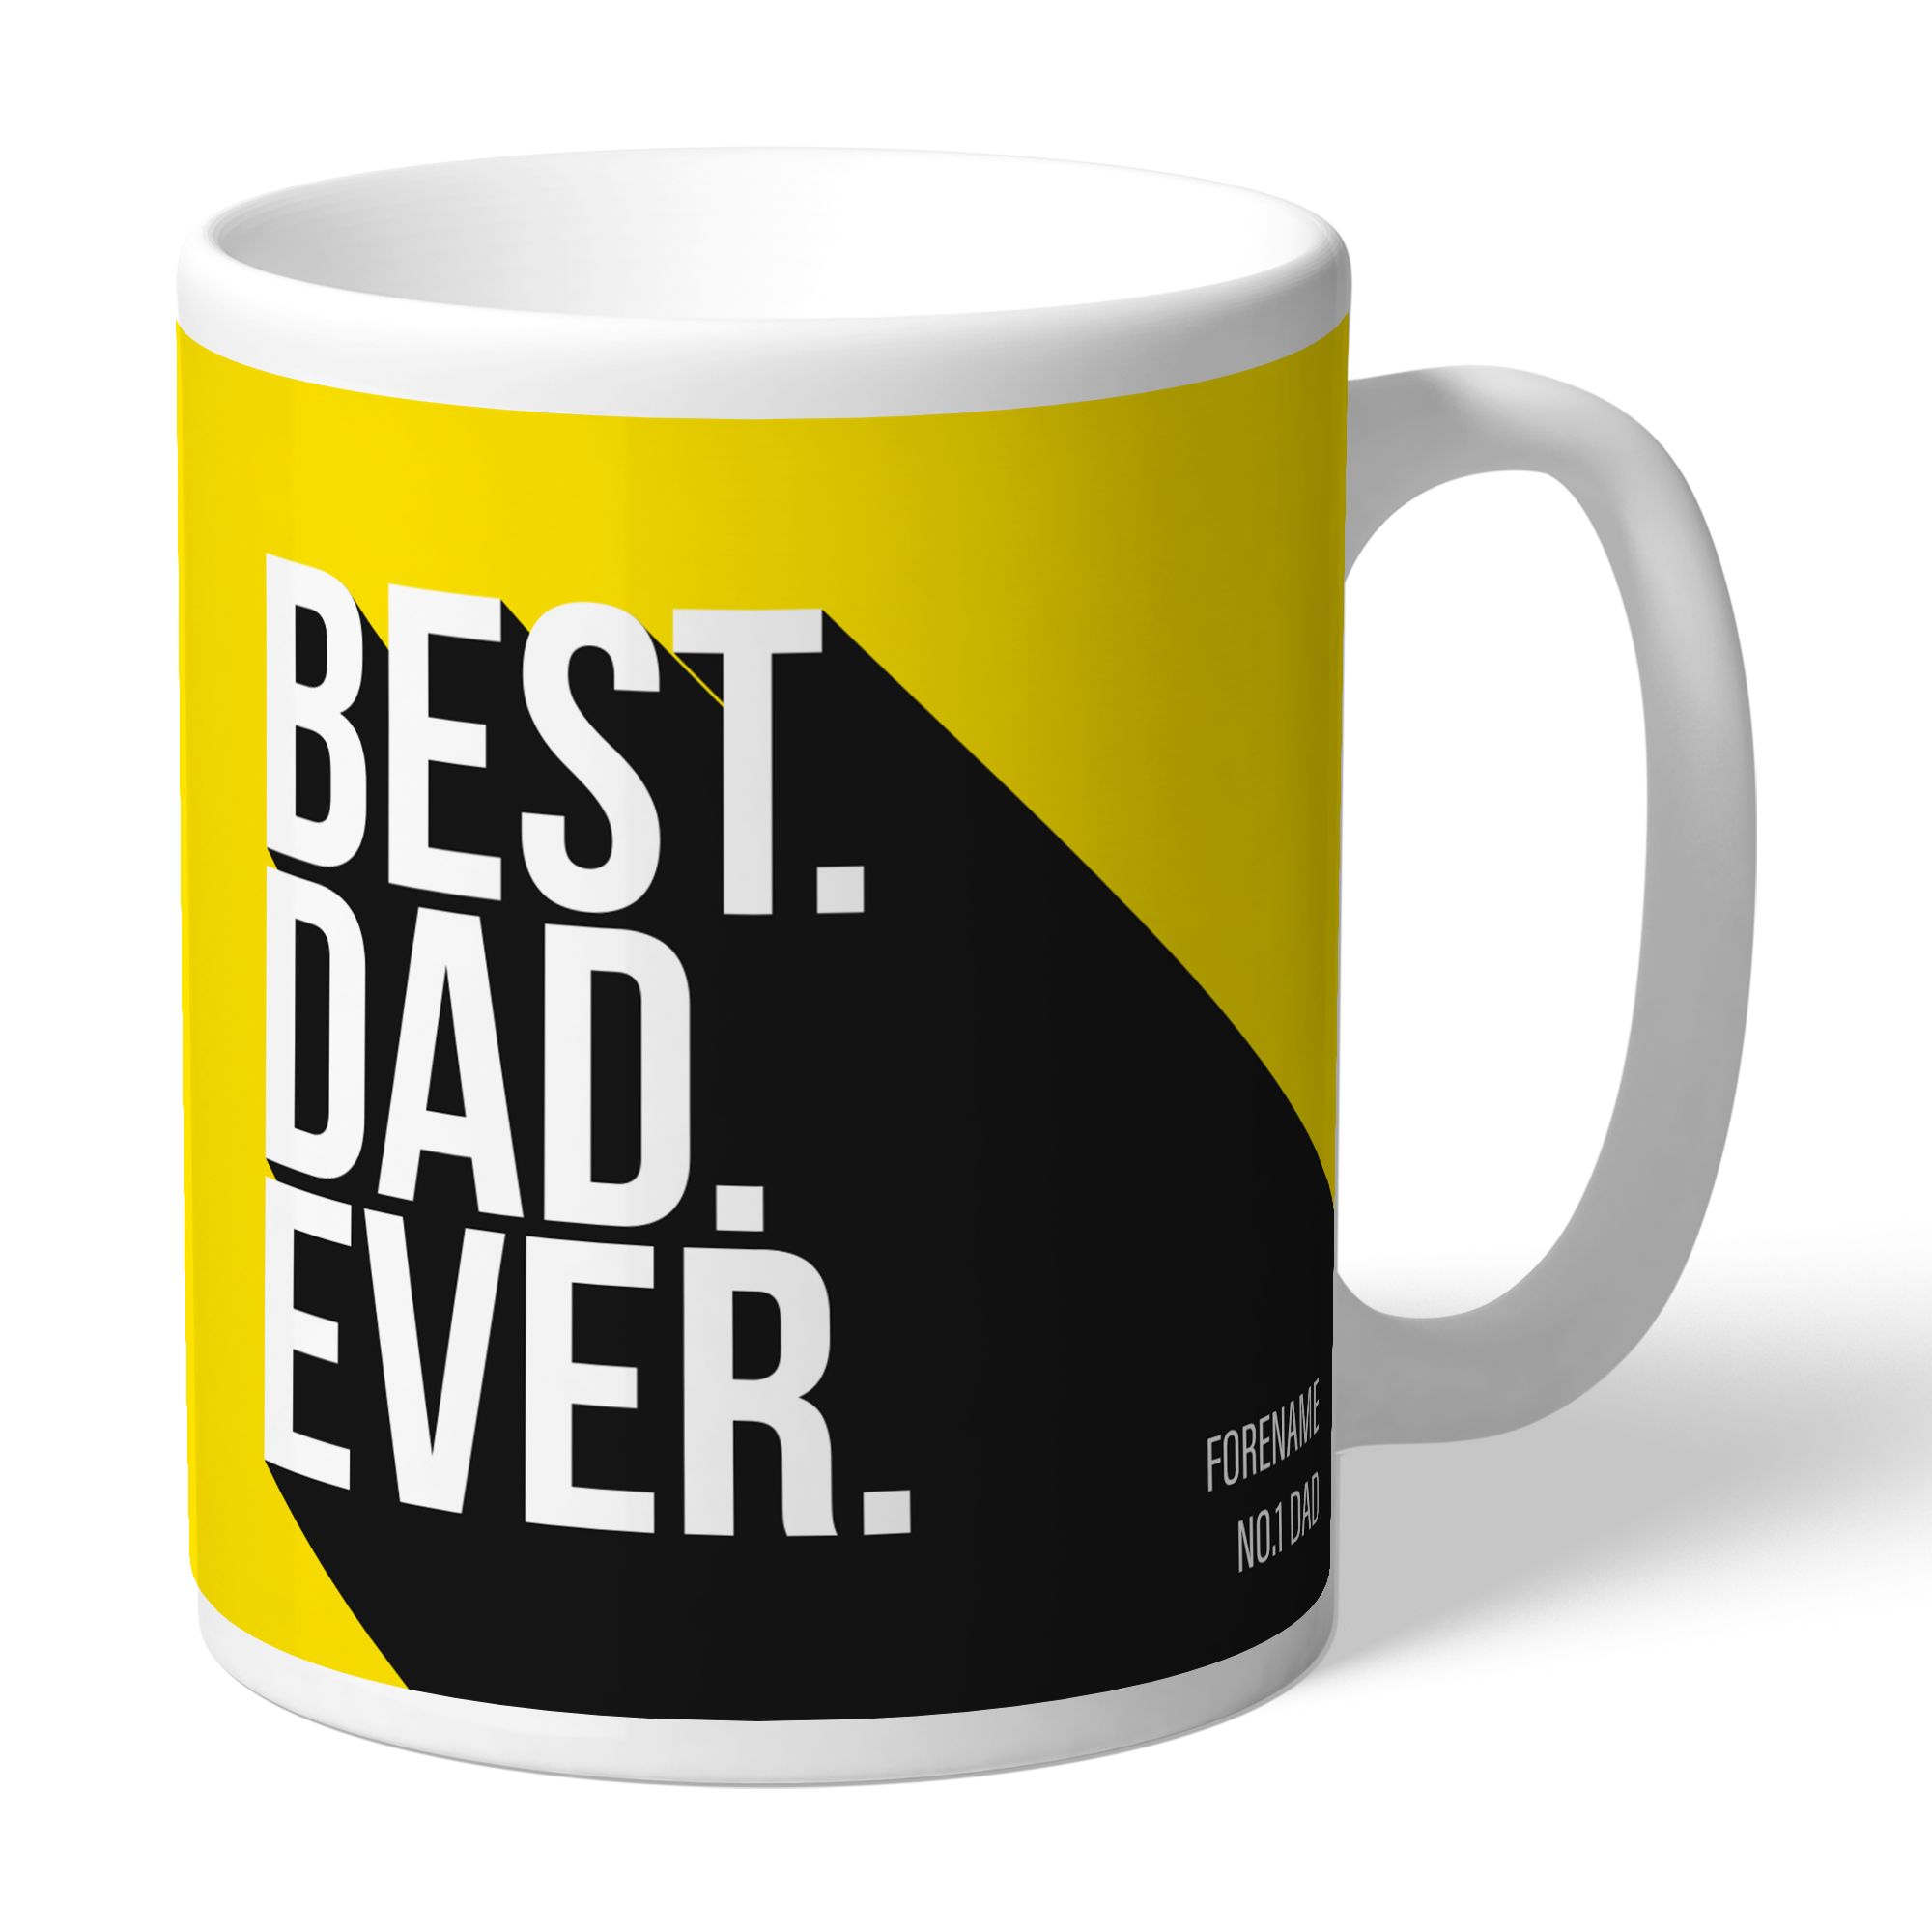 Watford FC Best Dad Ever Mug